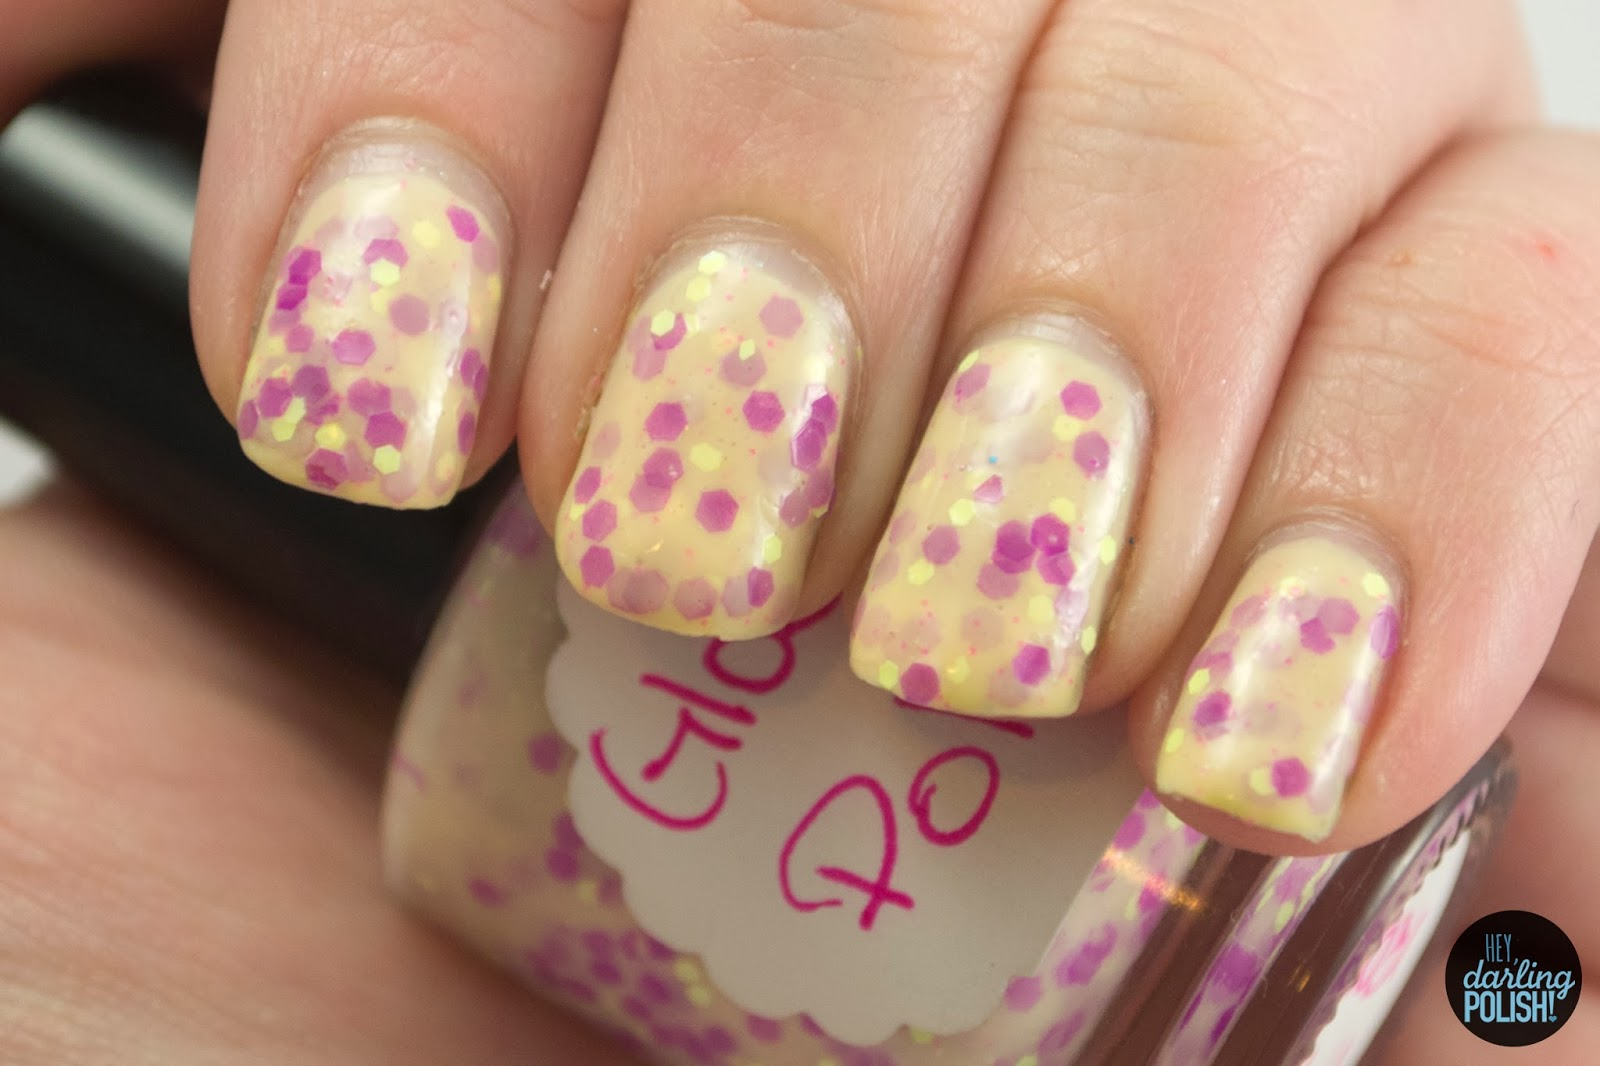 indie, indie polish, glossome polish, indie friday, glitter crelly, hey darling polish, pop rocks, yellow, purple